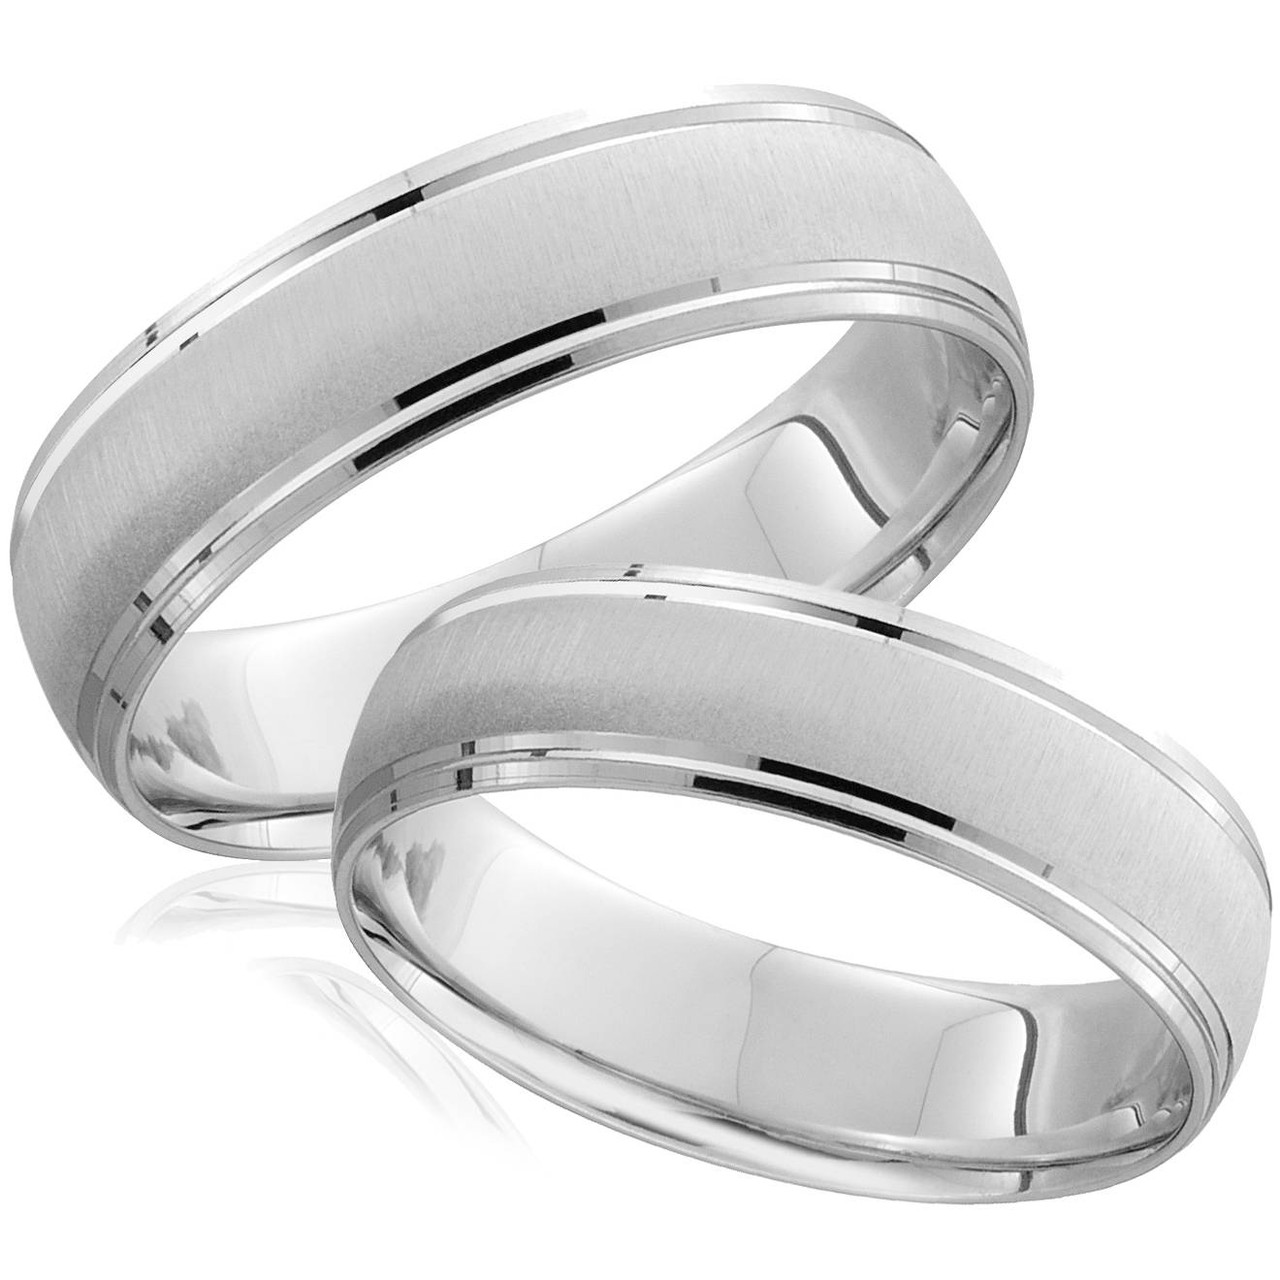 It is an image of White Gold Brushed Wedding Band Set Matching Mens Womens Rings 38k 38/38MM